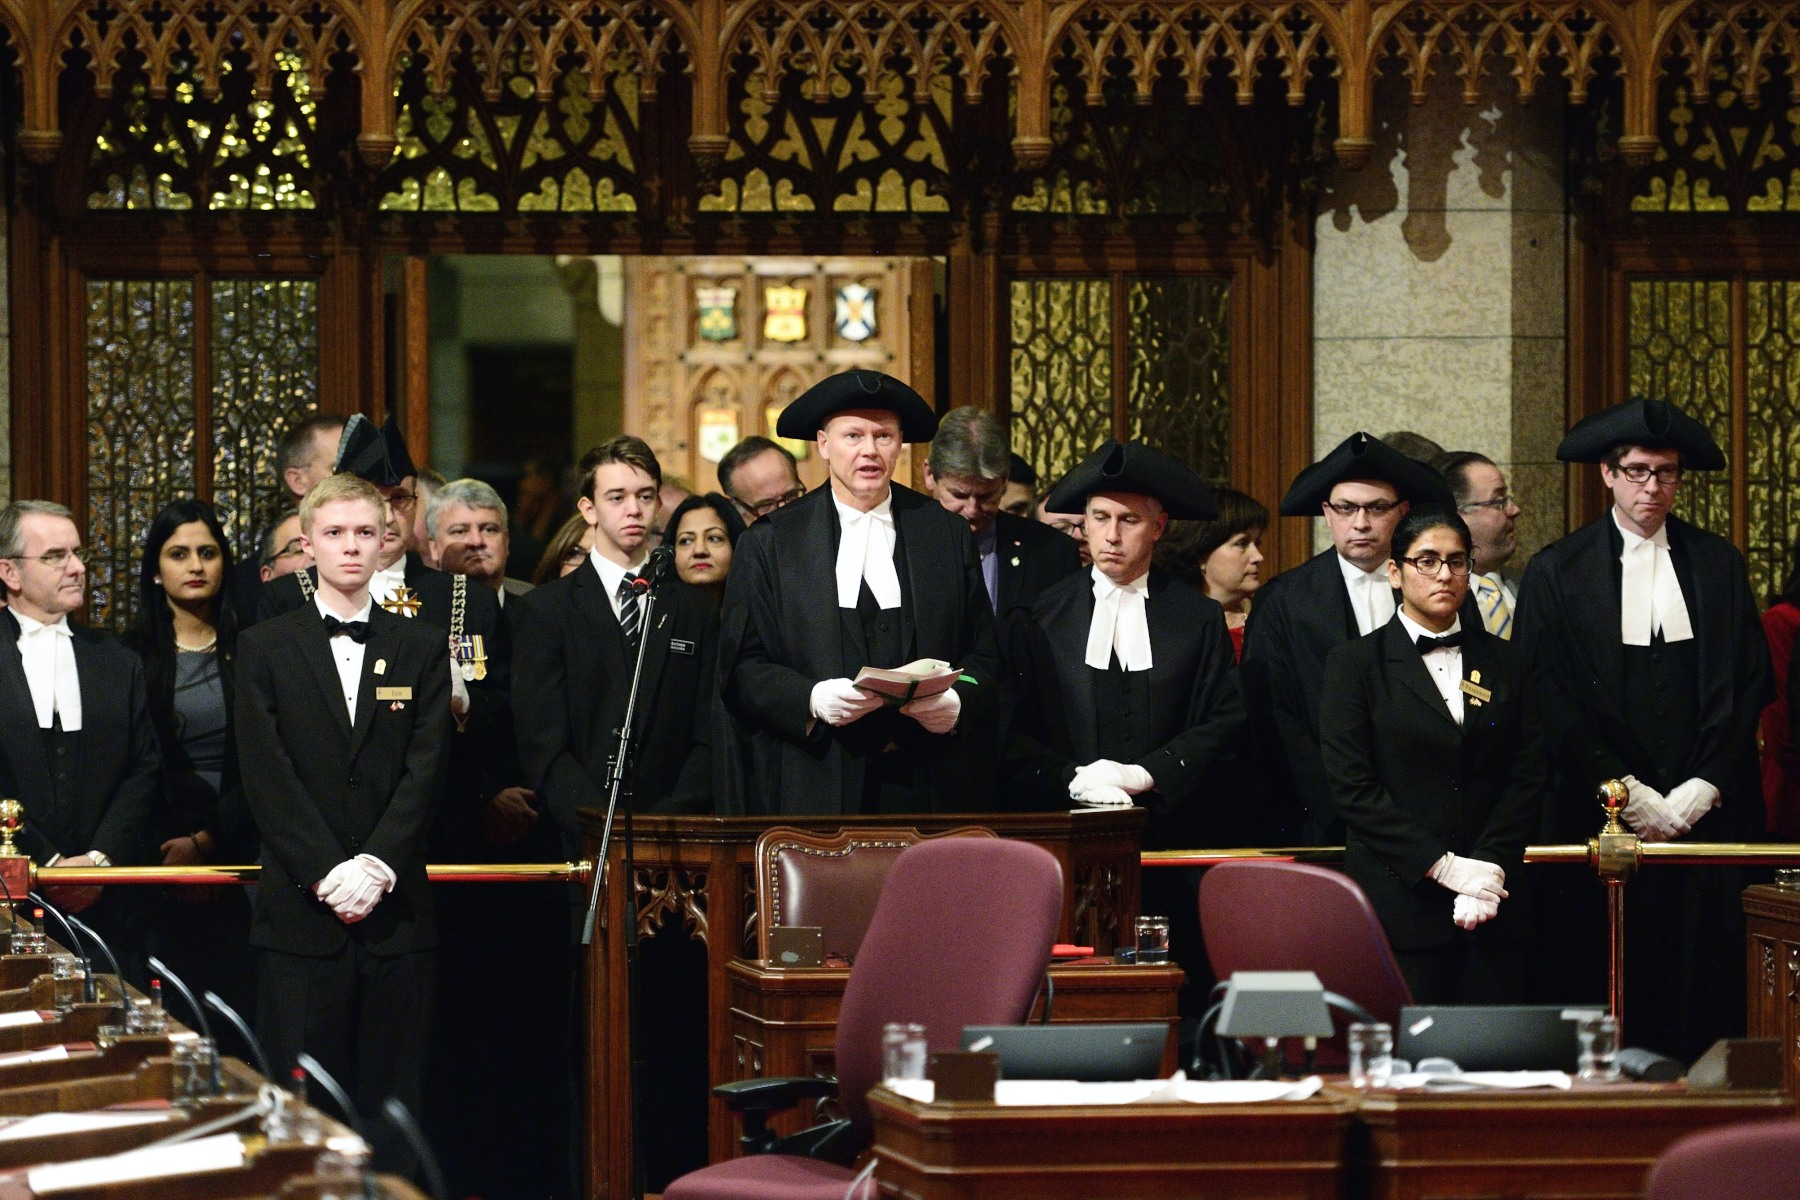 The Honourable Geoff Regan, Speaker of the House of Commons, and members of Parliament attended the ceremony.